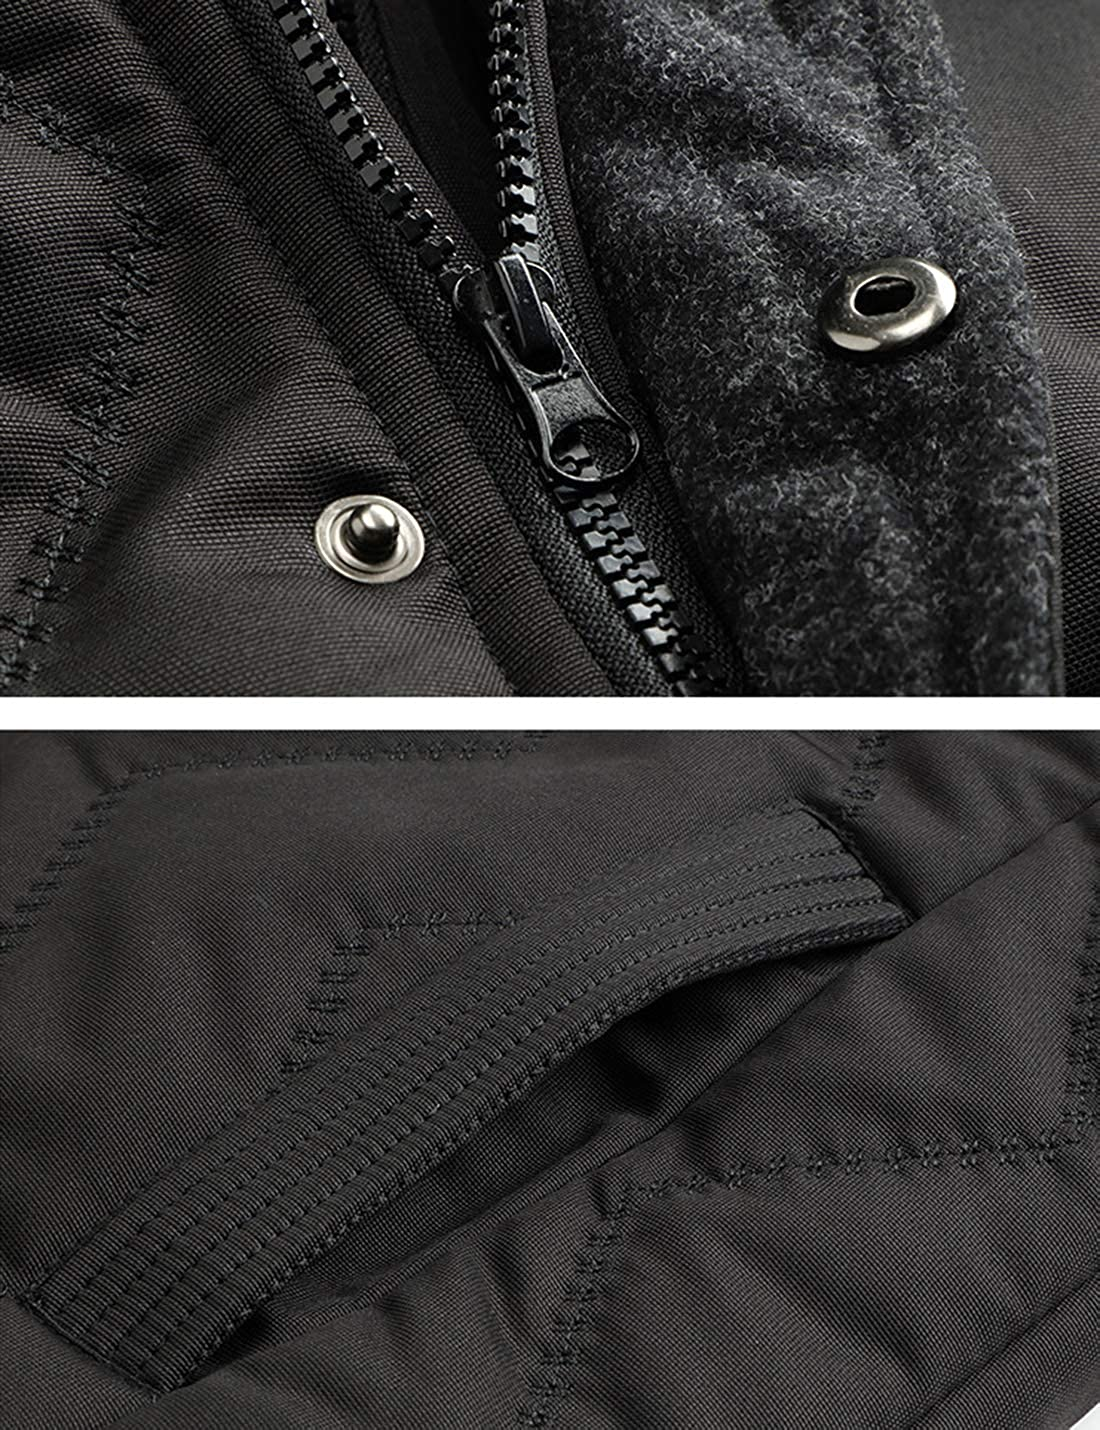 Uaneo Mens Winter Warm Sherpa Lined Cotton Padded Coat Jacket with Detachable Hood